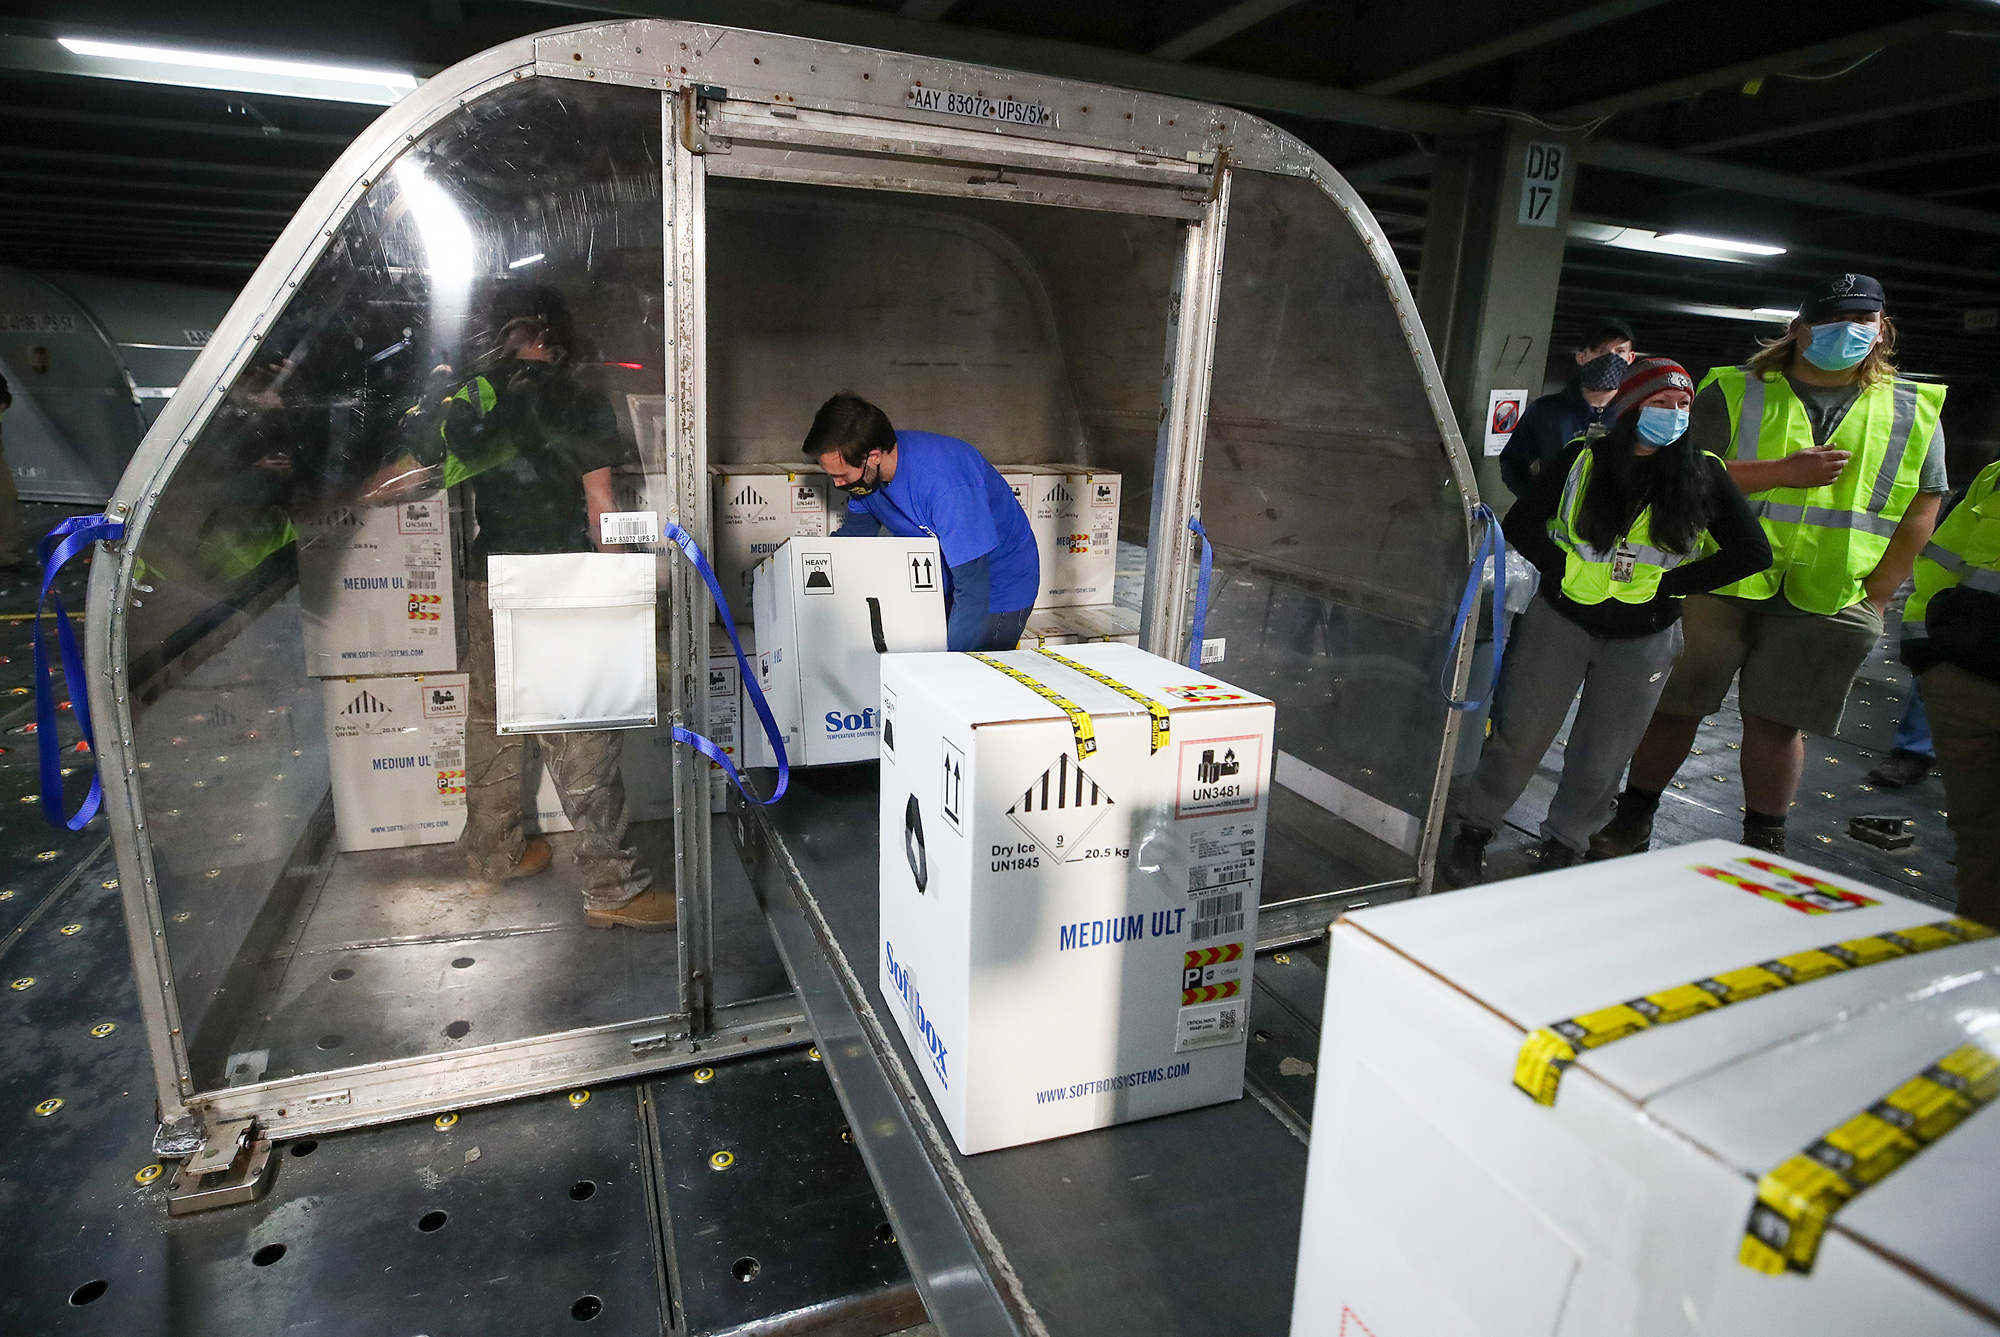 Boxes containing the first shipments of the Pfizer and BioNTech COVID-19 vaccine are unloaded from air shipping containers at UPS Worldport on December 13 in Louisville, Kentucky.